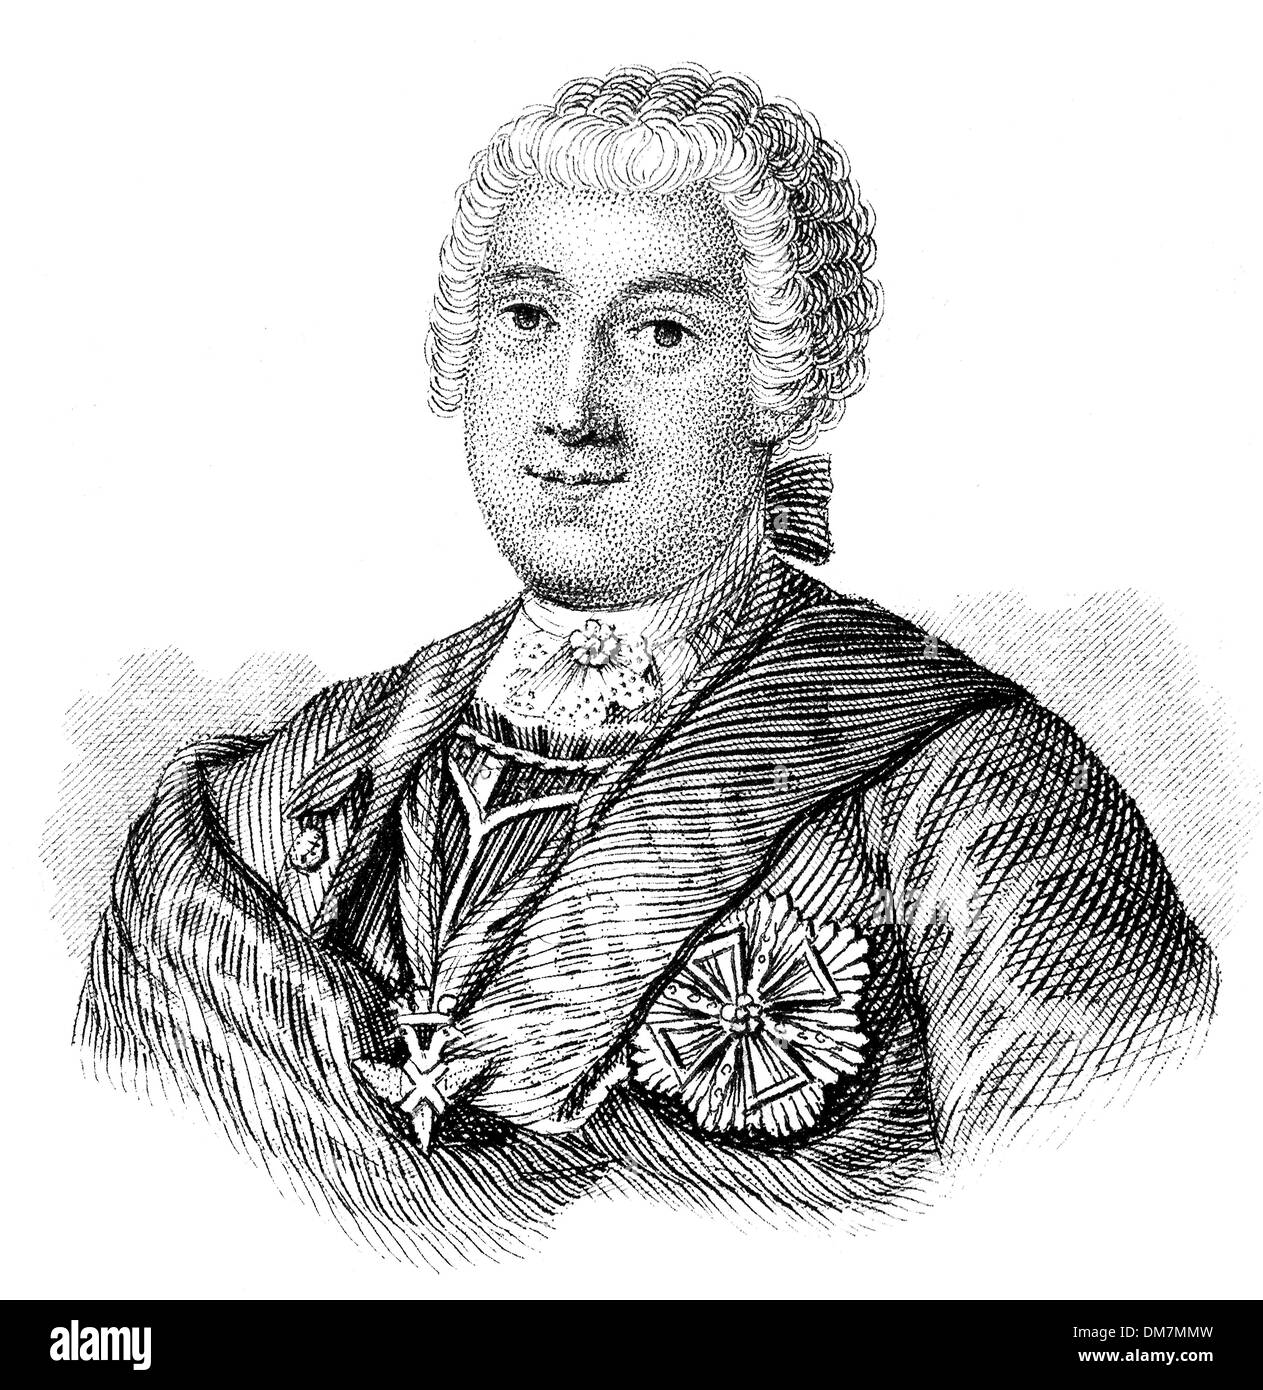 Heinrich, count von Brühl, 1700 - 1763, a German statesman at the court of Saxony and the Polish–Lithuanian Commonwealth, - Stock Image